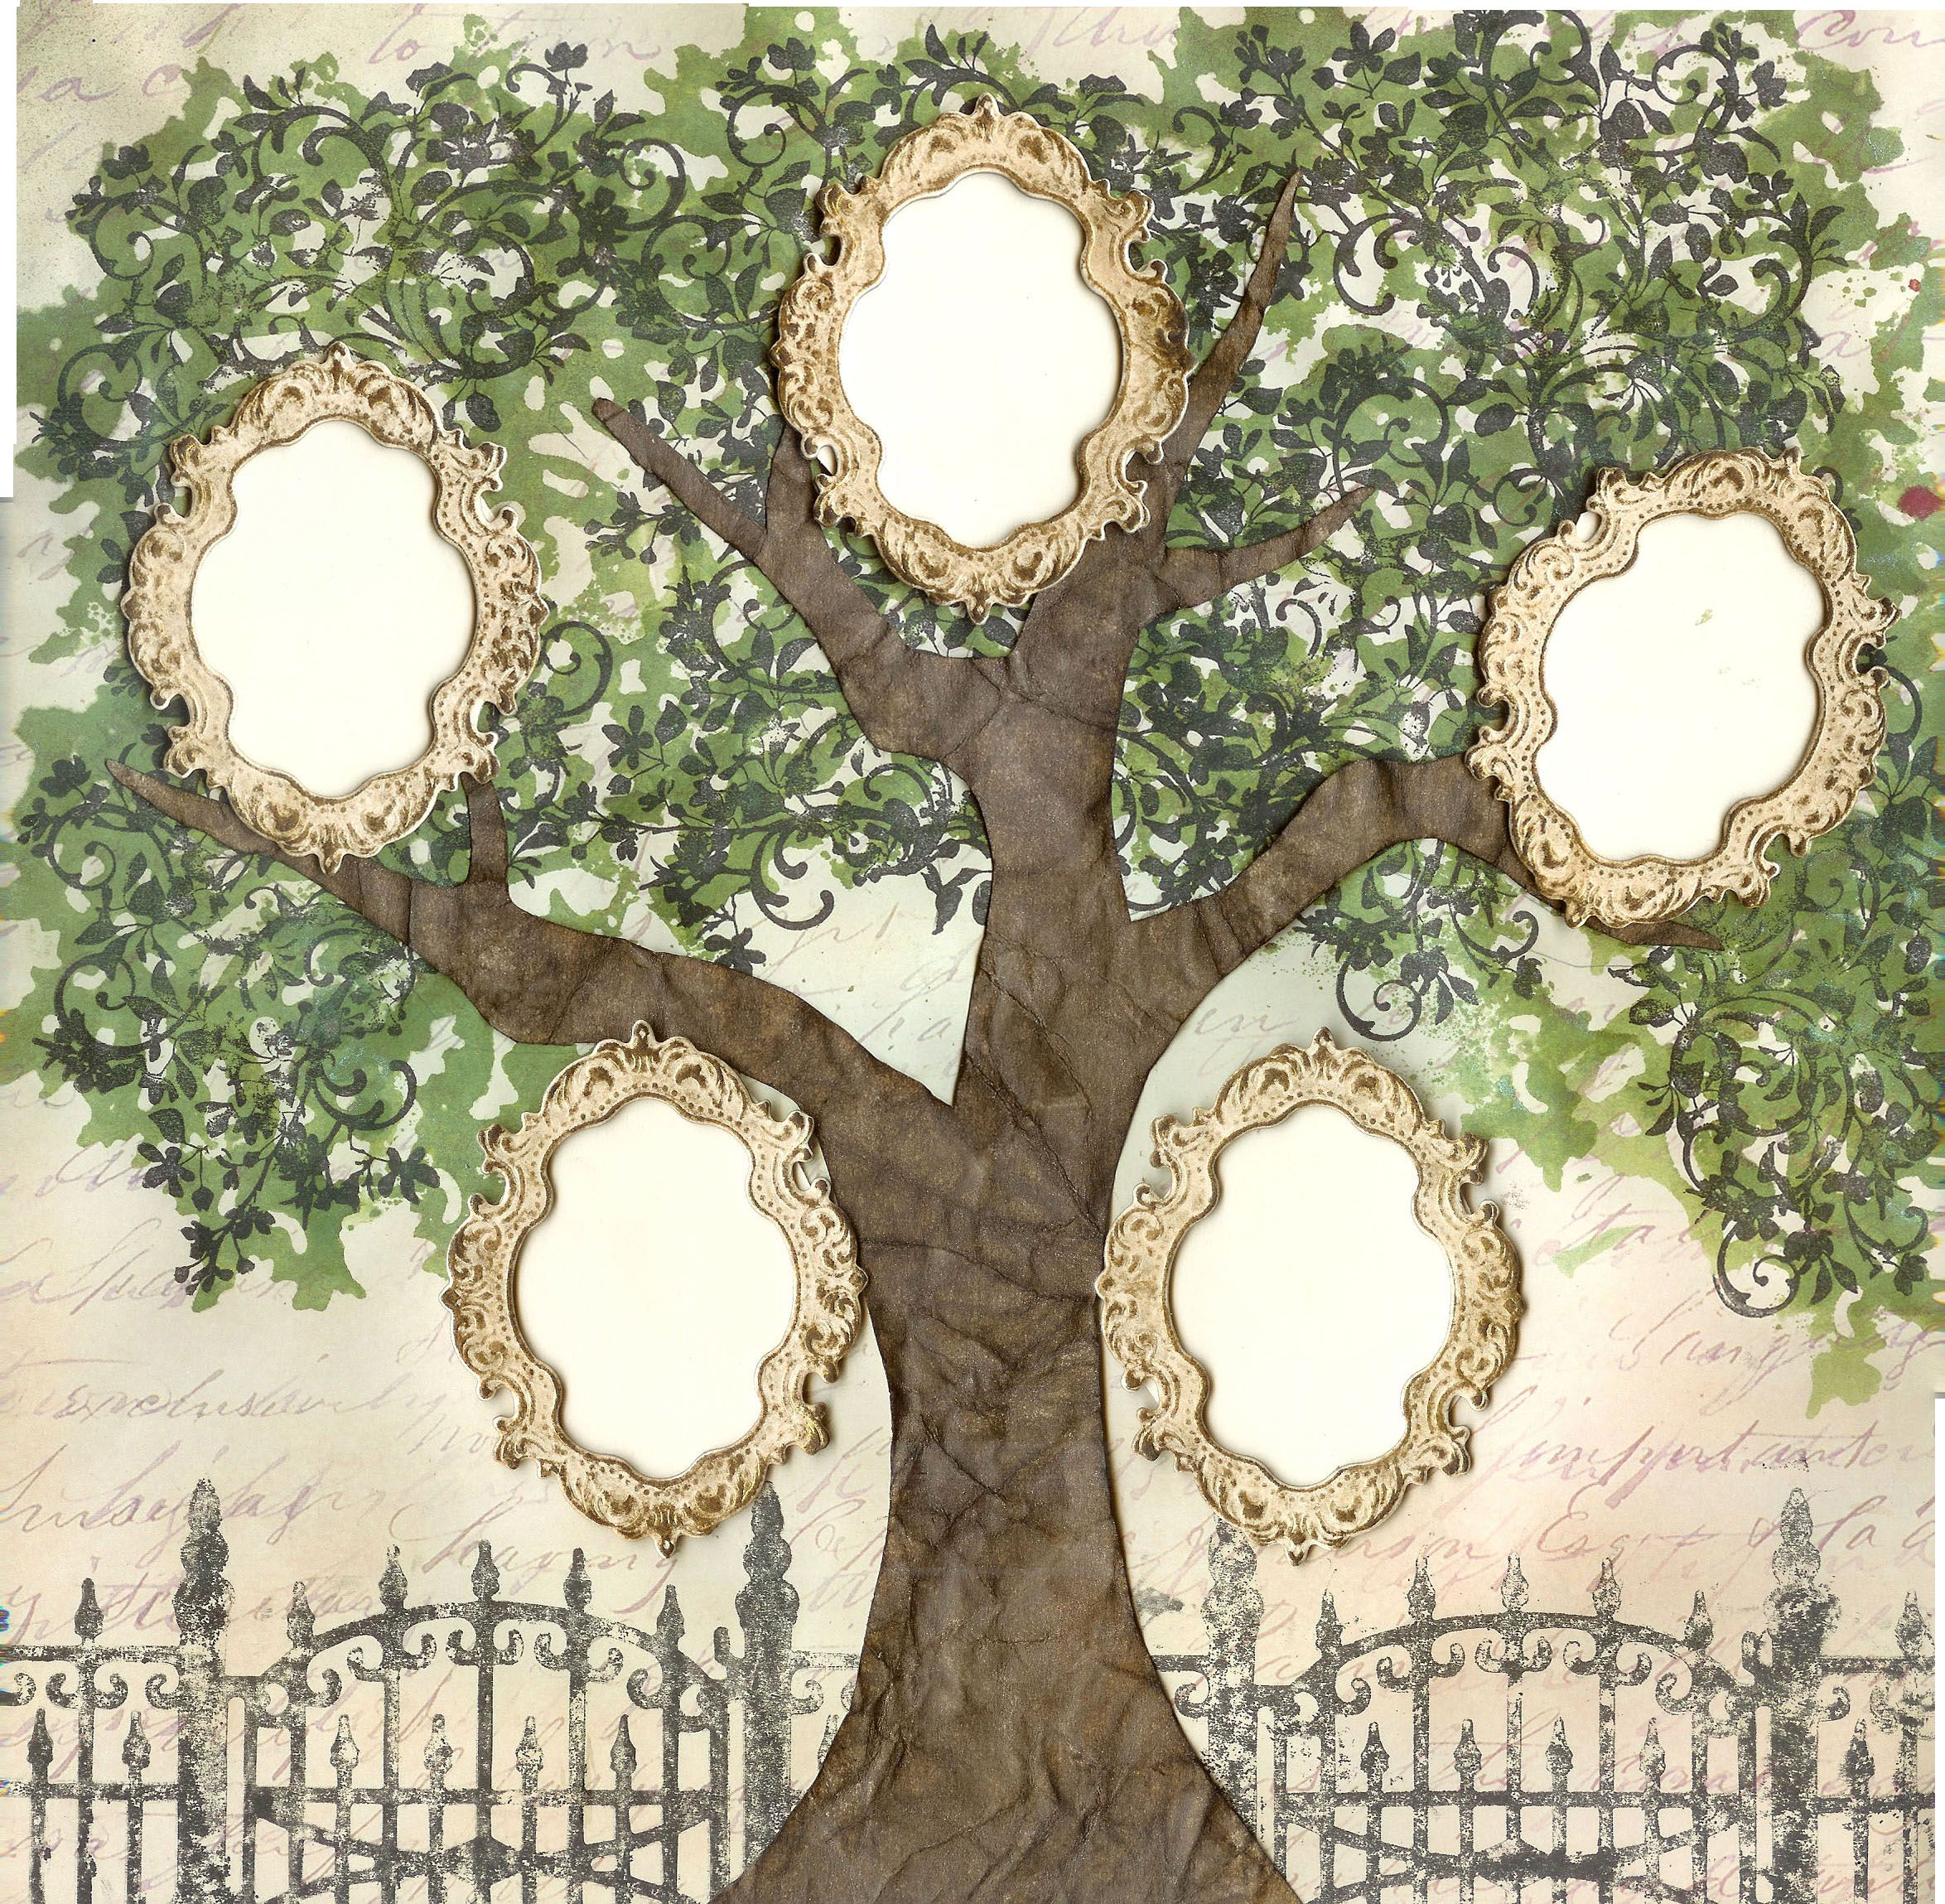 Once Upon A Time The Dubois Family Was Full Of Life And Love But Since Then There Has Been A Great L Family Tree Template Family Tree Harry Potter Family Tree